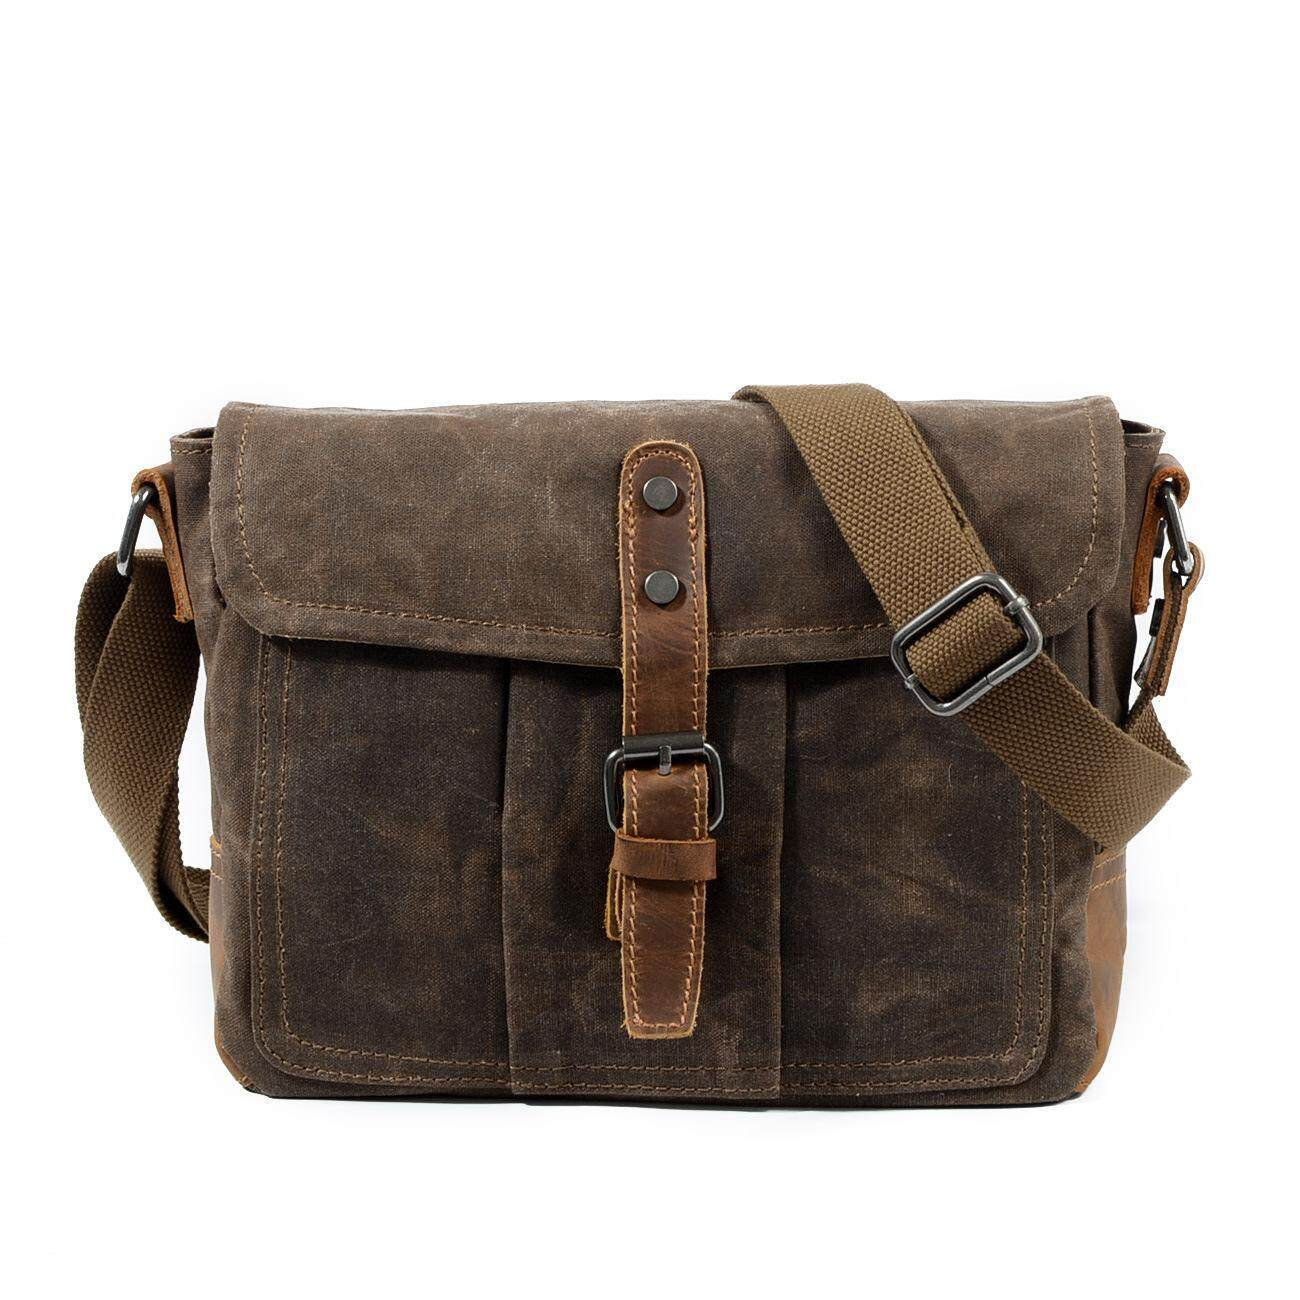 a68a87e65e7e New Messenger Bag Casual Canvas Men s Bag Shoulder Bag Men Simple Men  Messenger Bag Waterproof Men Bag Cross